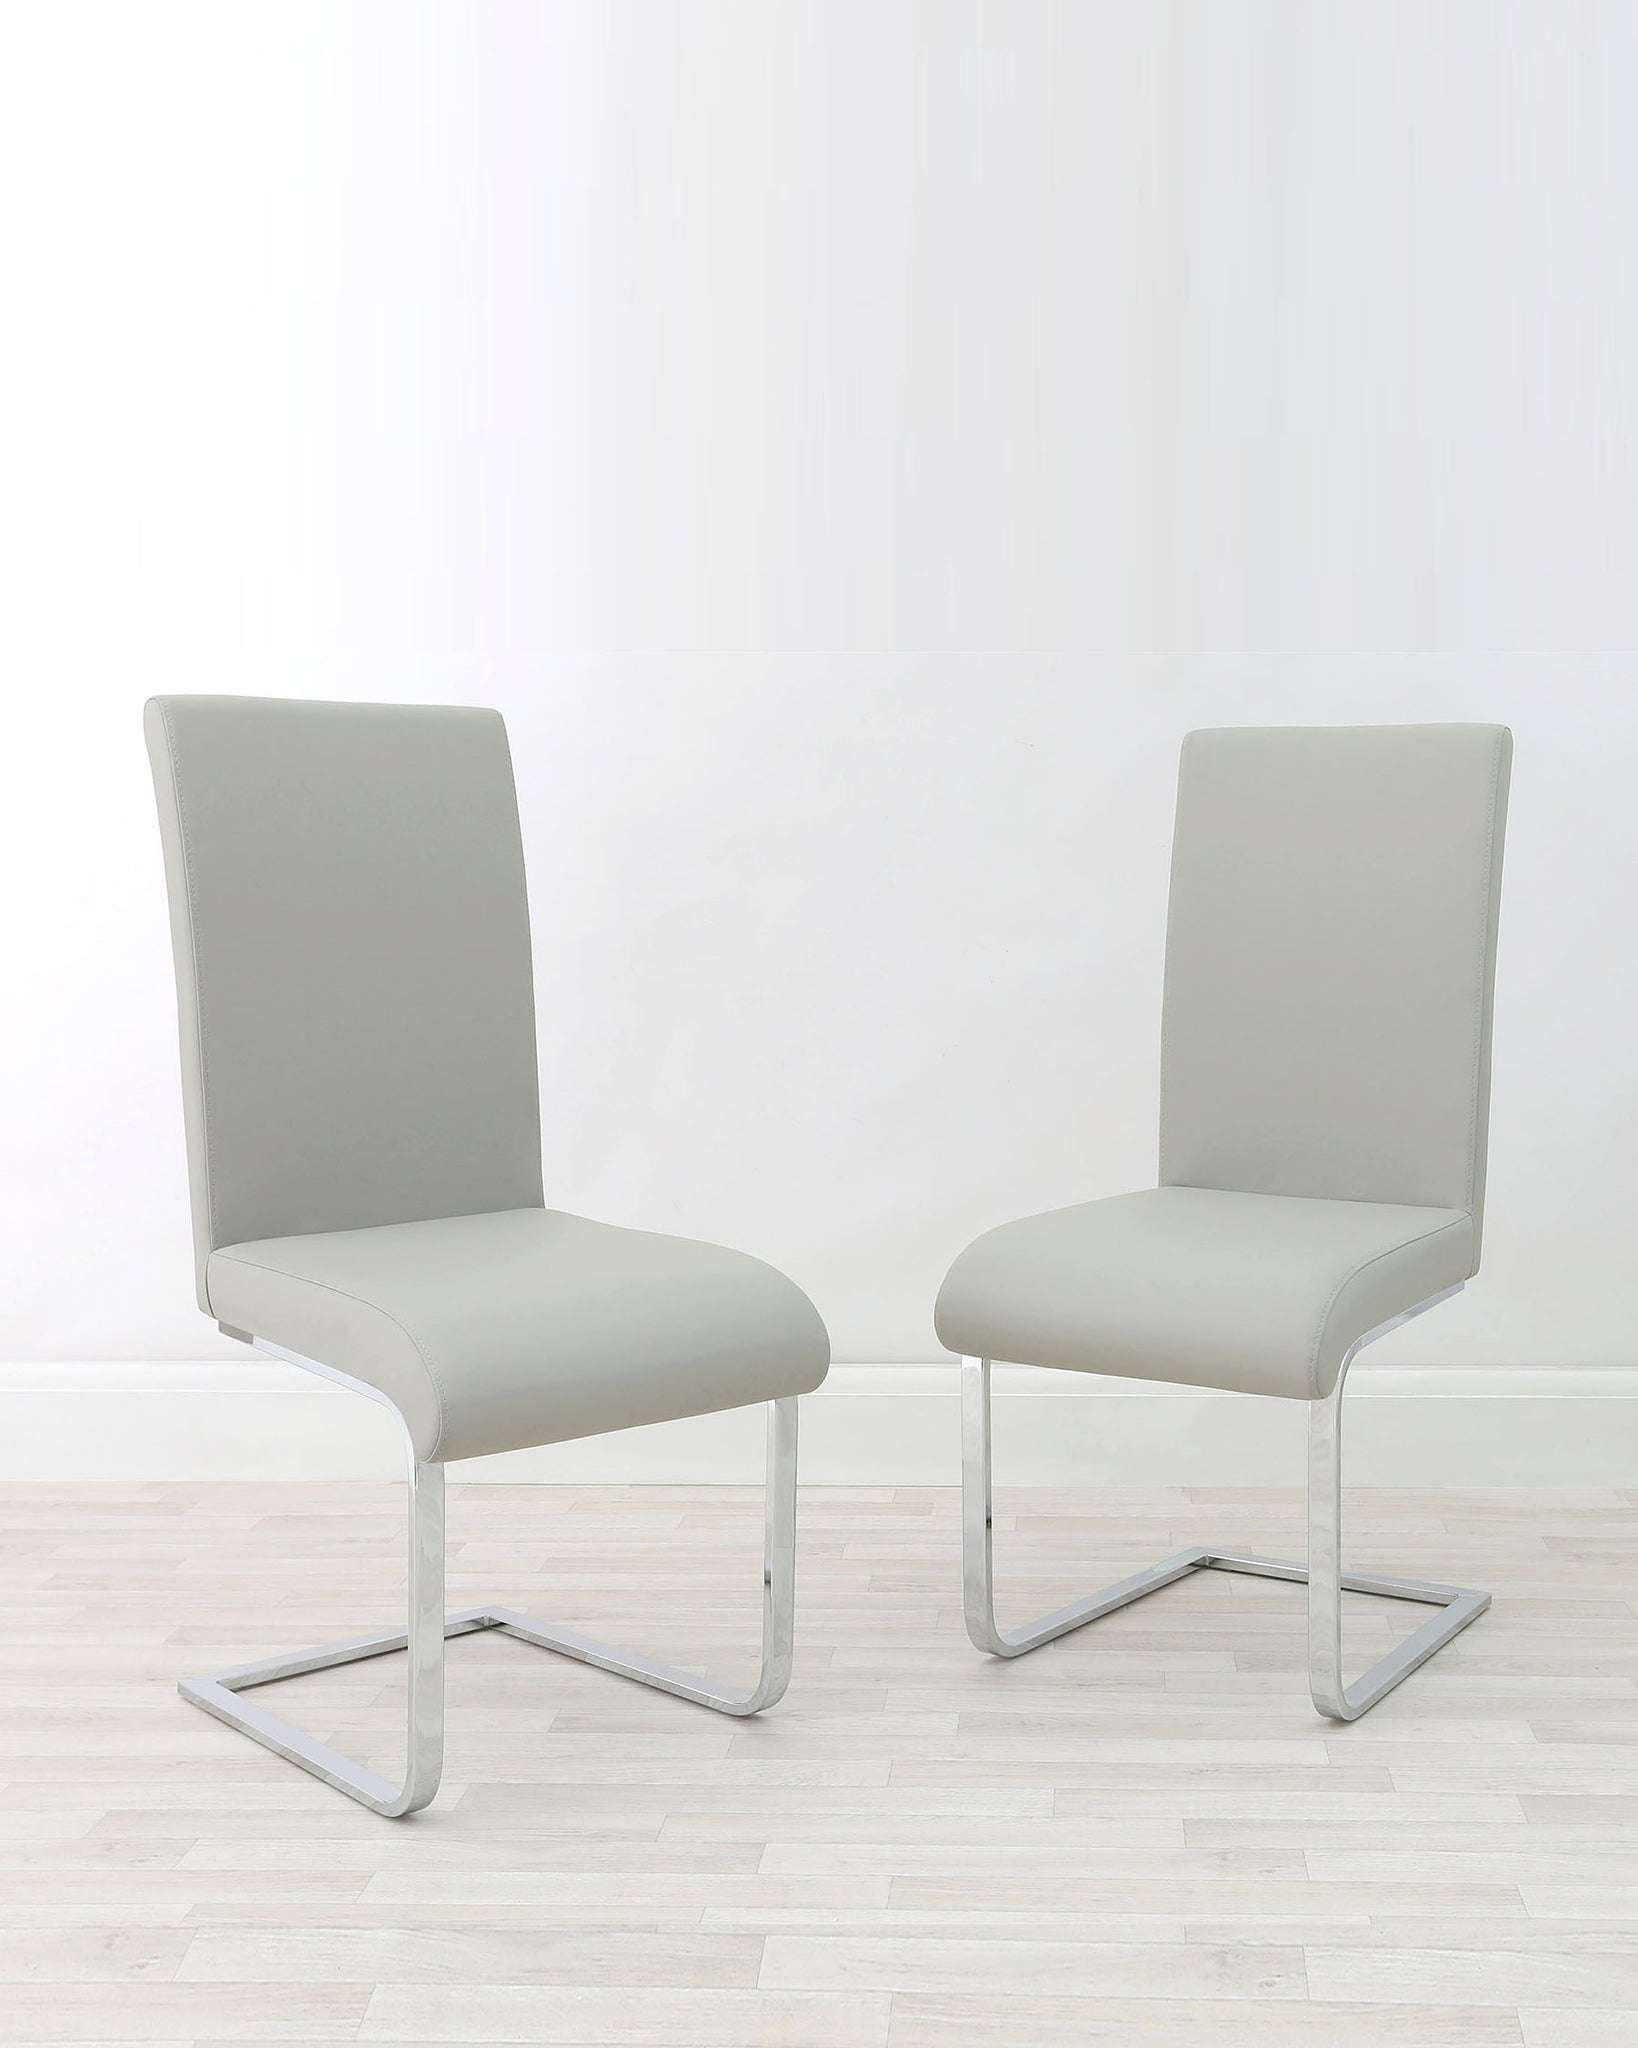 Imola Cantilever Light Grey Faux Leather Chair - Set Of 2